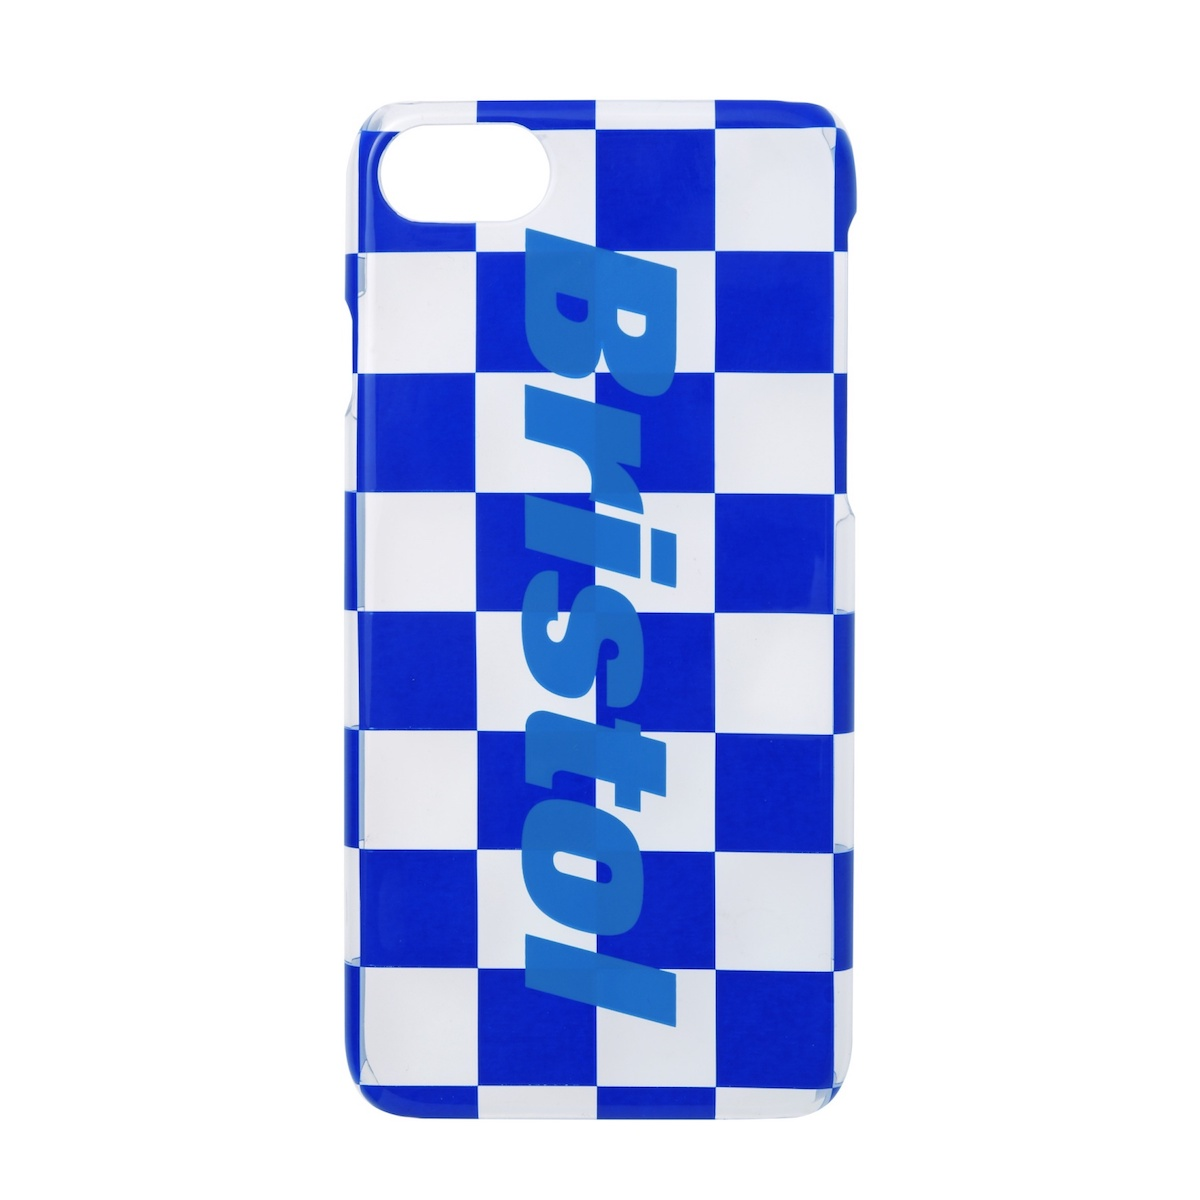 F.C.Real Bristol / BRISTOL PHONE CASE (for iPhone 6/7/8) -Blue